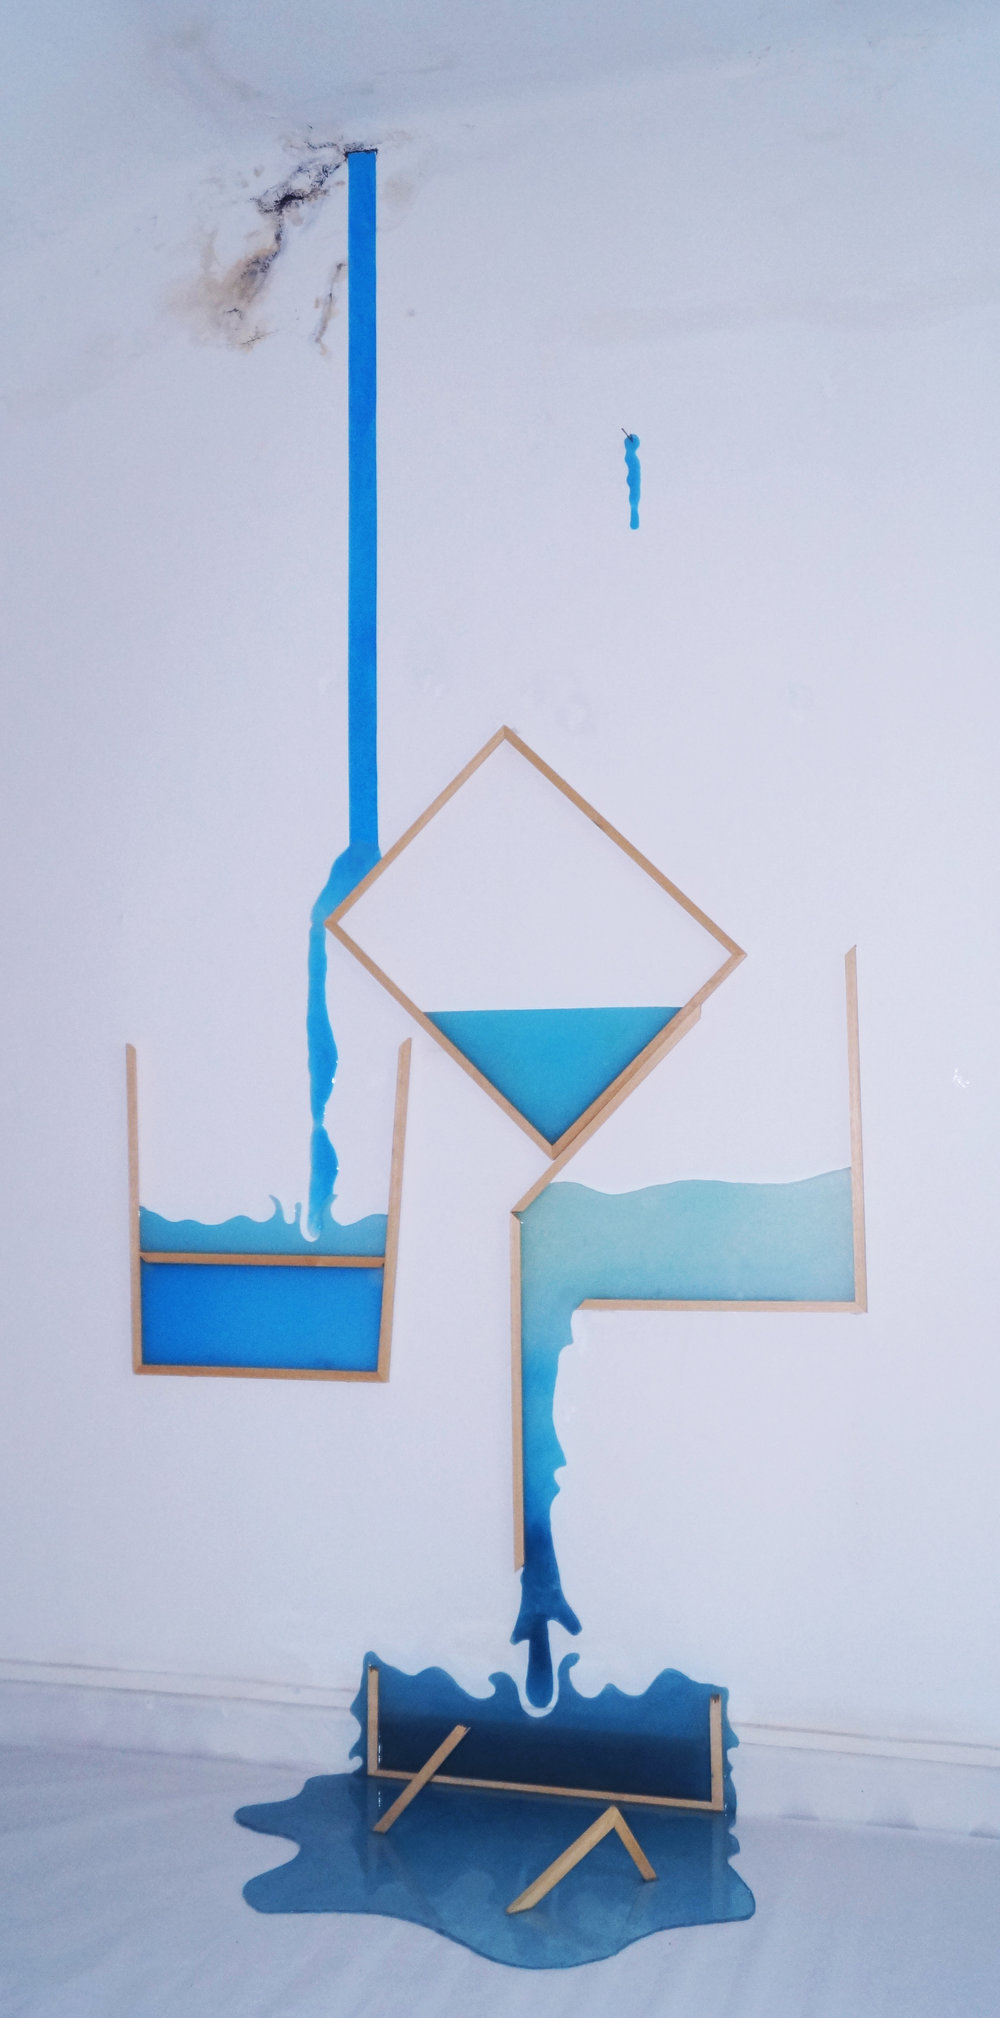 Incontenibles   ,  2016  Methacrylate, resin, pigments, wooden frames and screws  250 x 150 x 50 cm